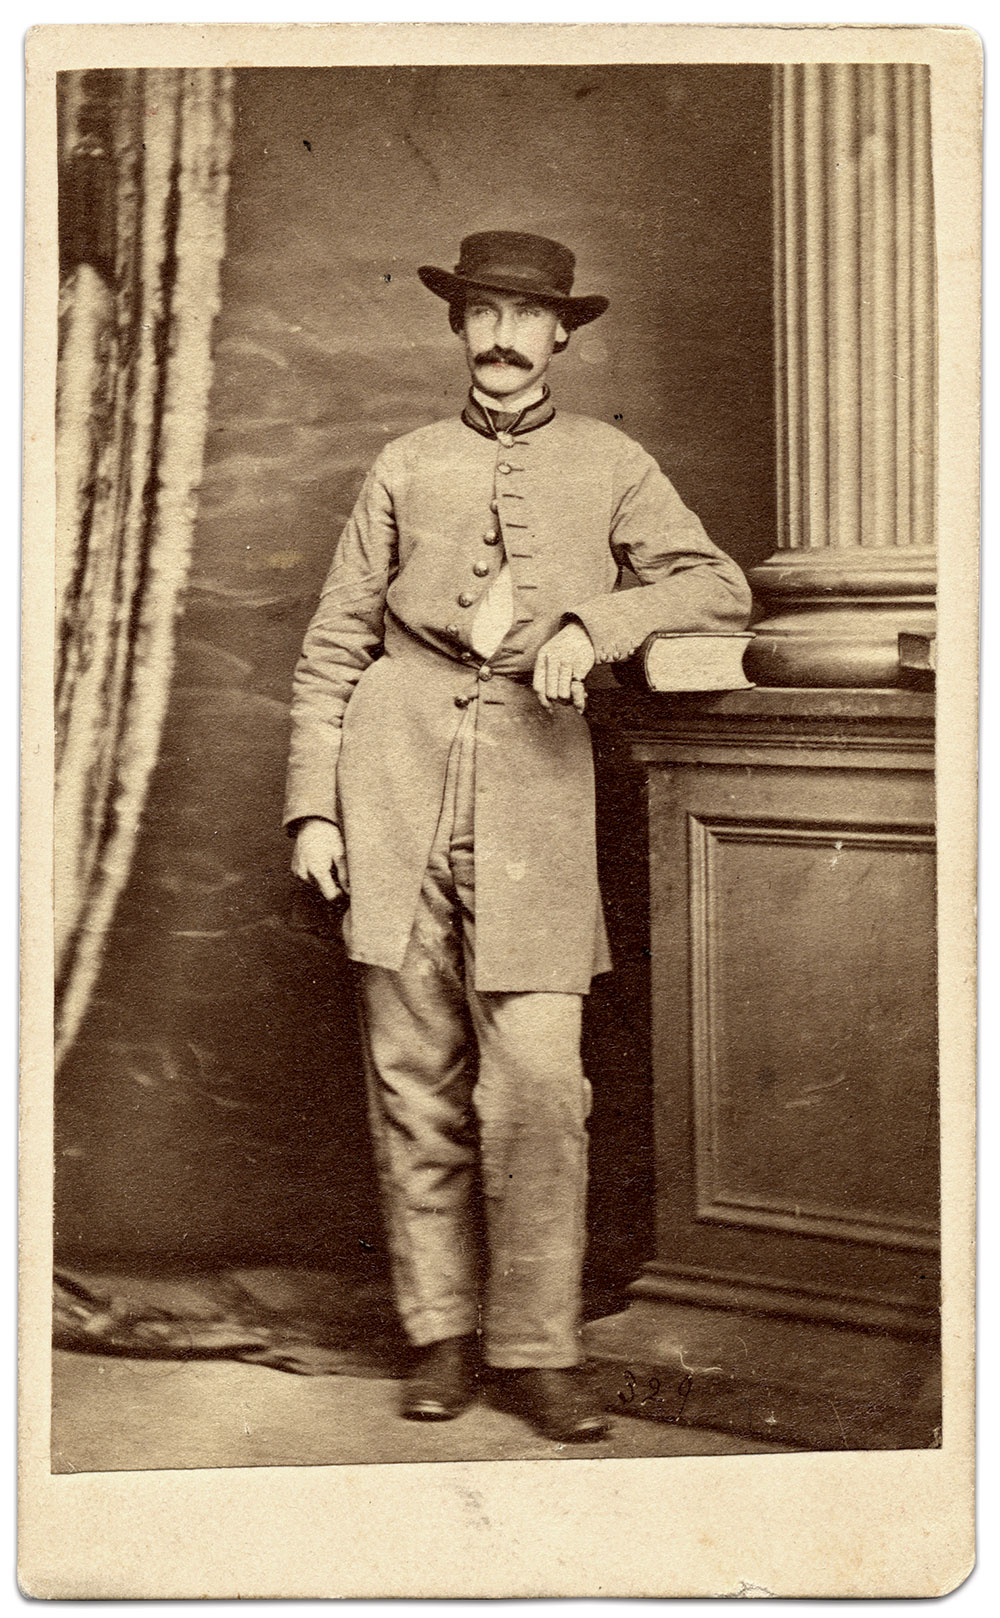 Carte de visite by Charles R. Rees & Co. of Richmond, Va. Collection of the American Civil War Museum.